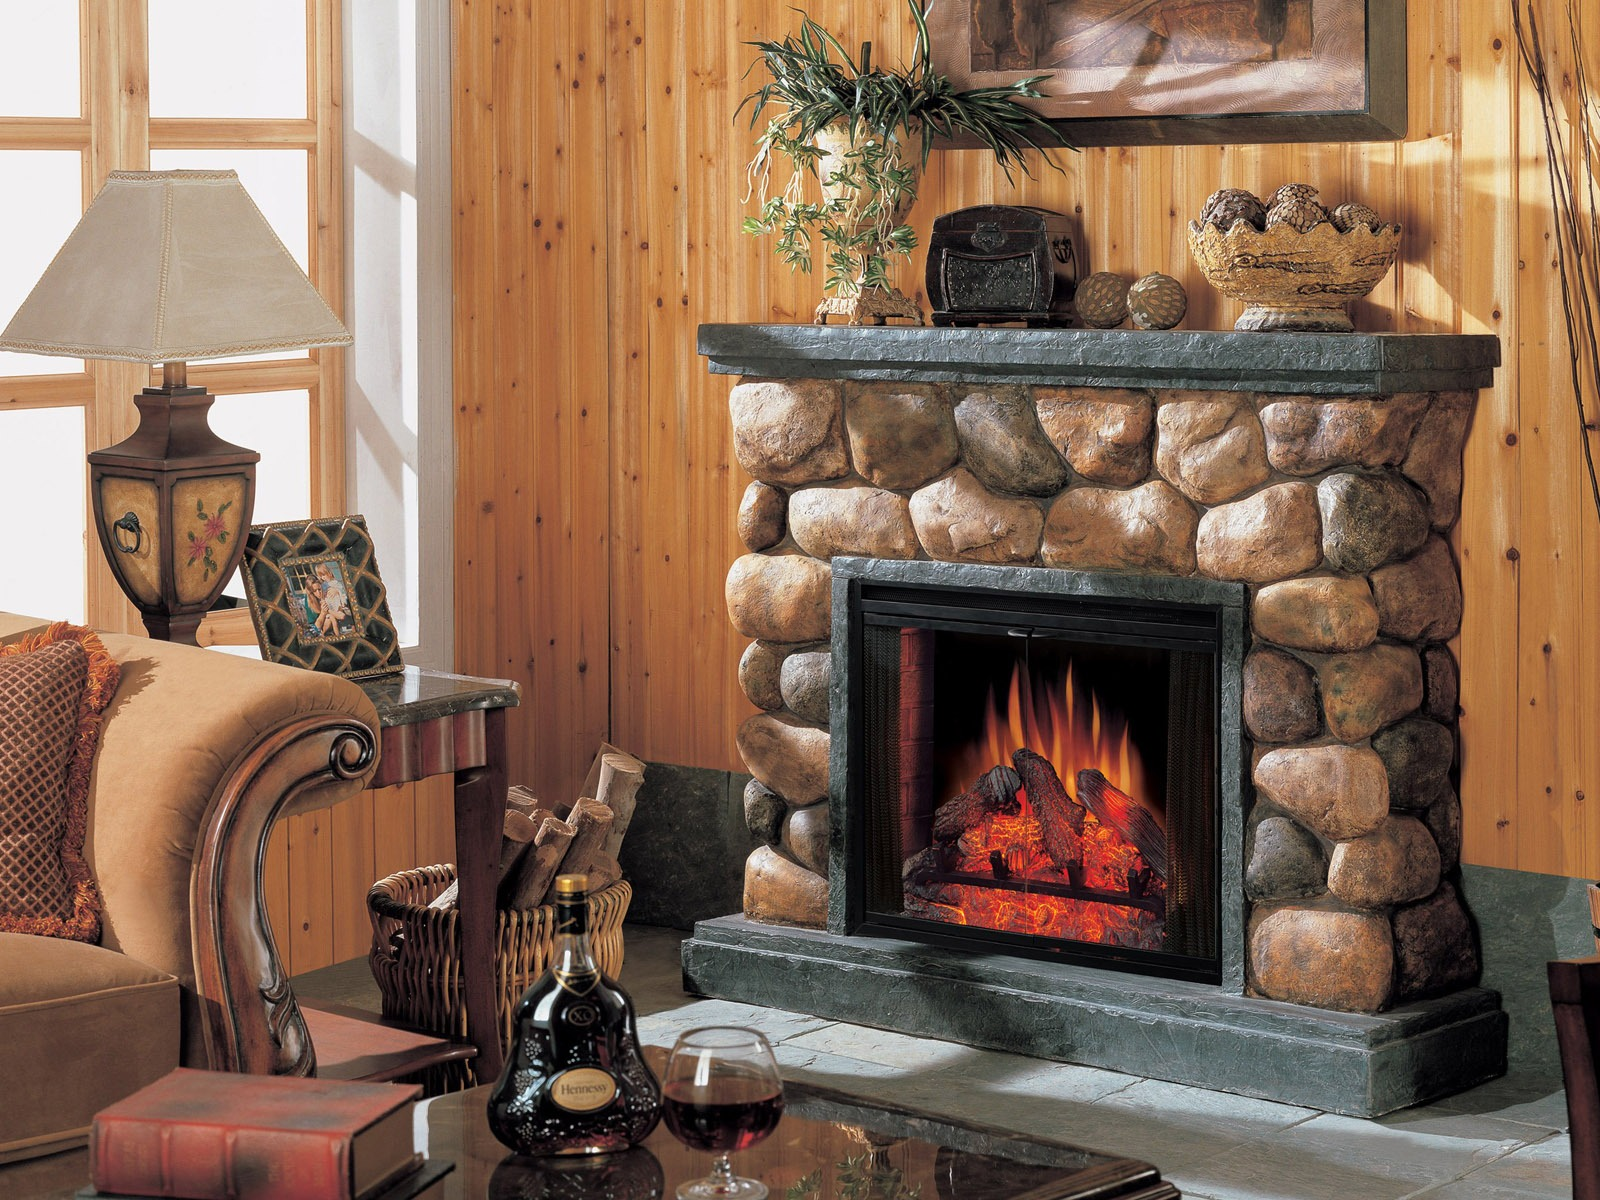 western fireplace wallpaper - photo #3